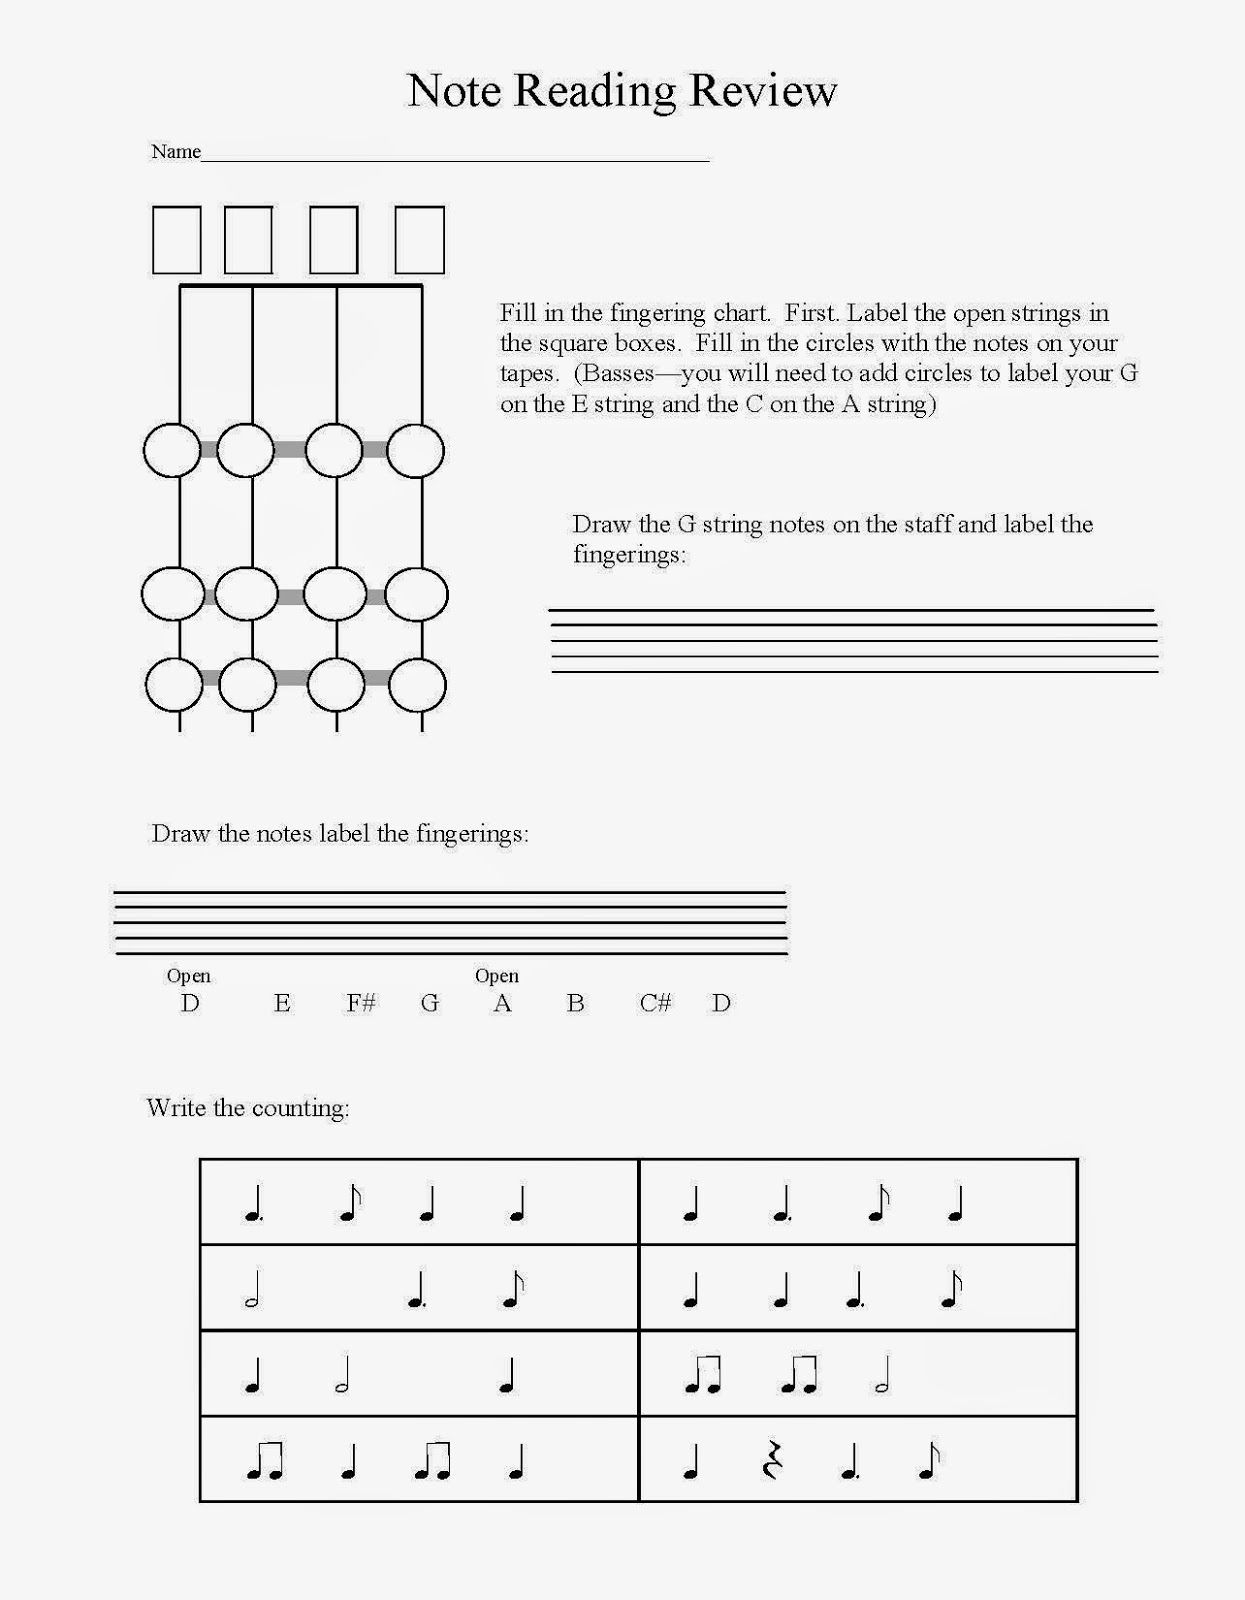 Orchestra Classroom Ideas: Mid-year Assessment for Beginning ...